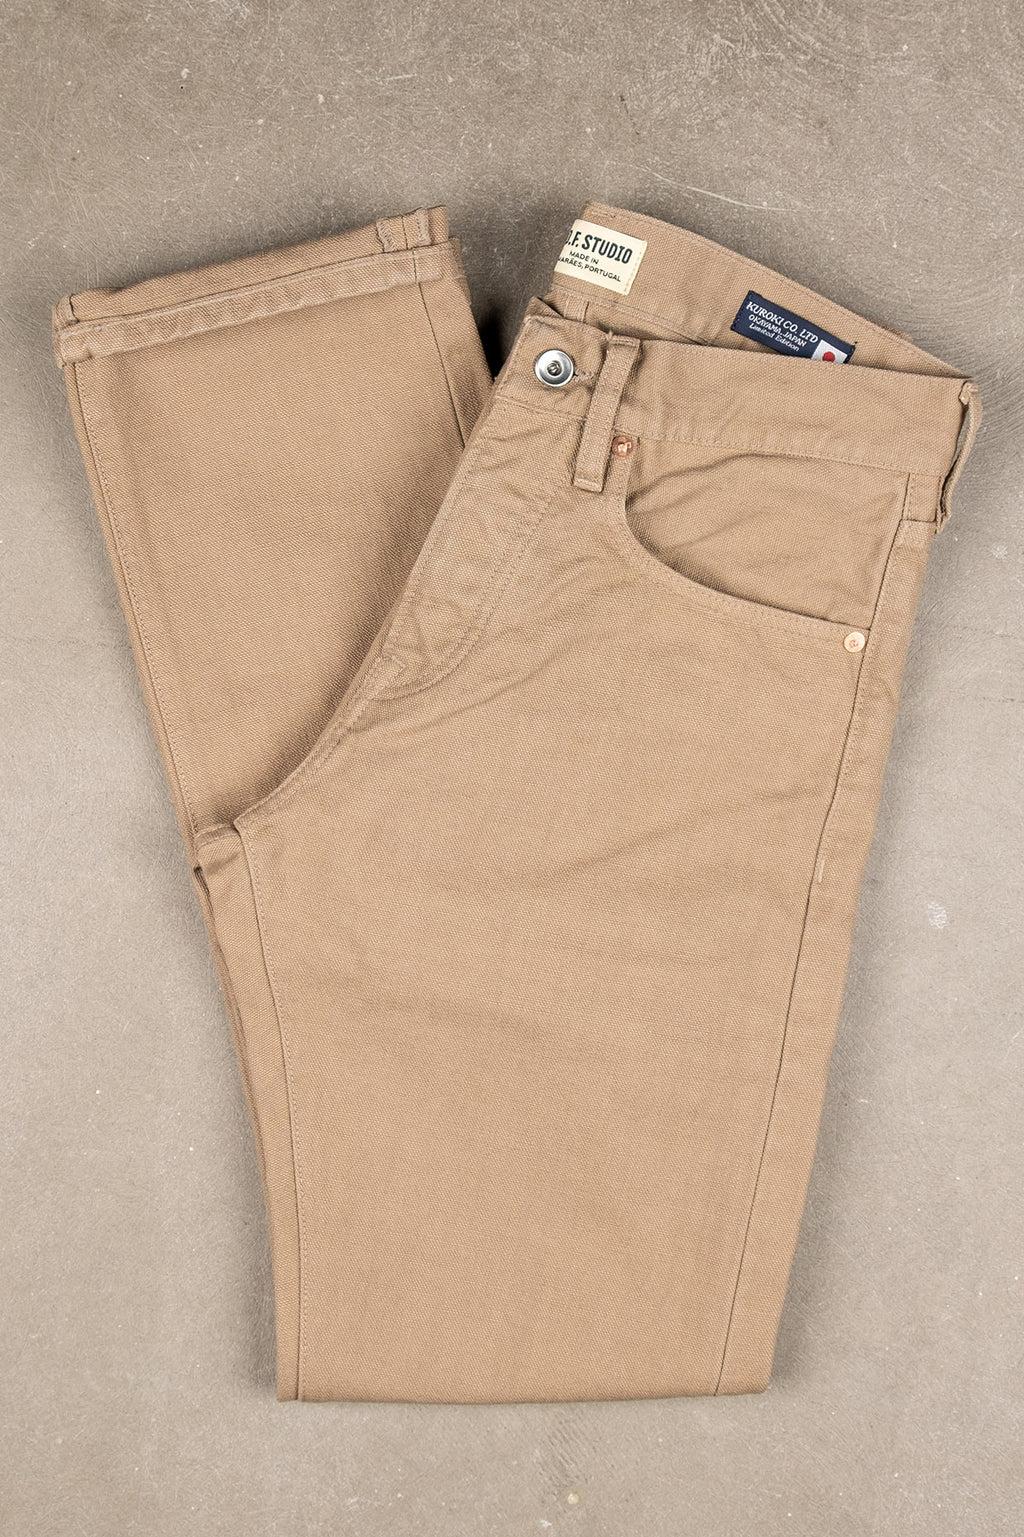 M2 16oz Kuroki Canvas - Khaki Beige